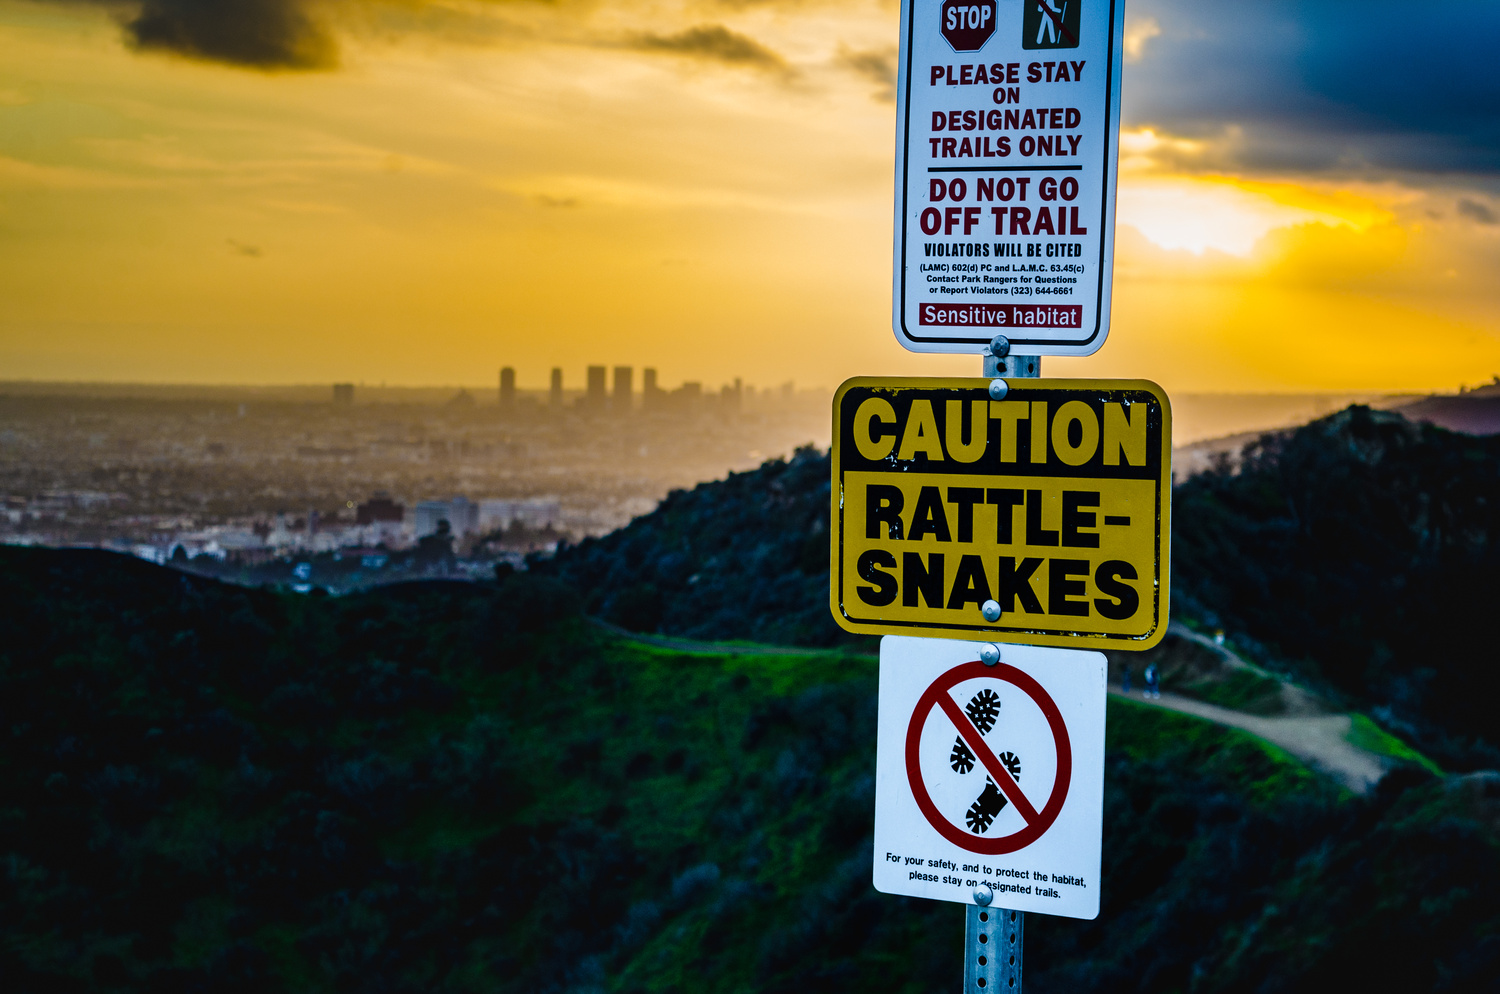 Caution Rattle-snakes by Paul Kowalski